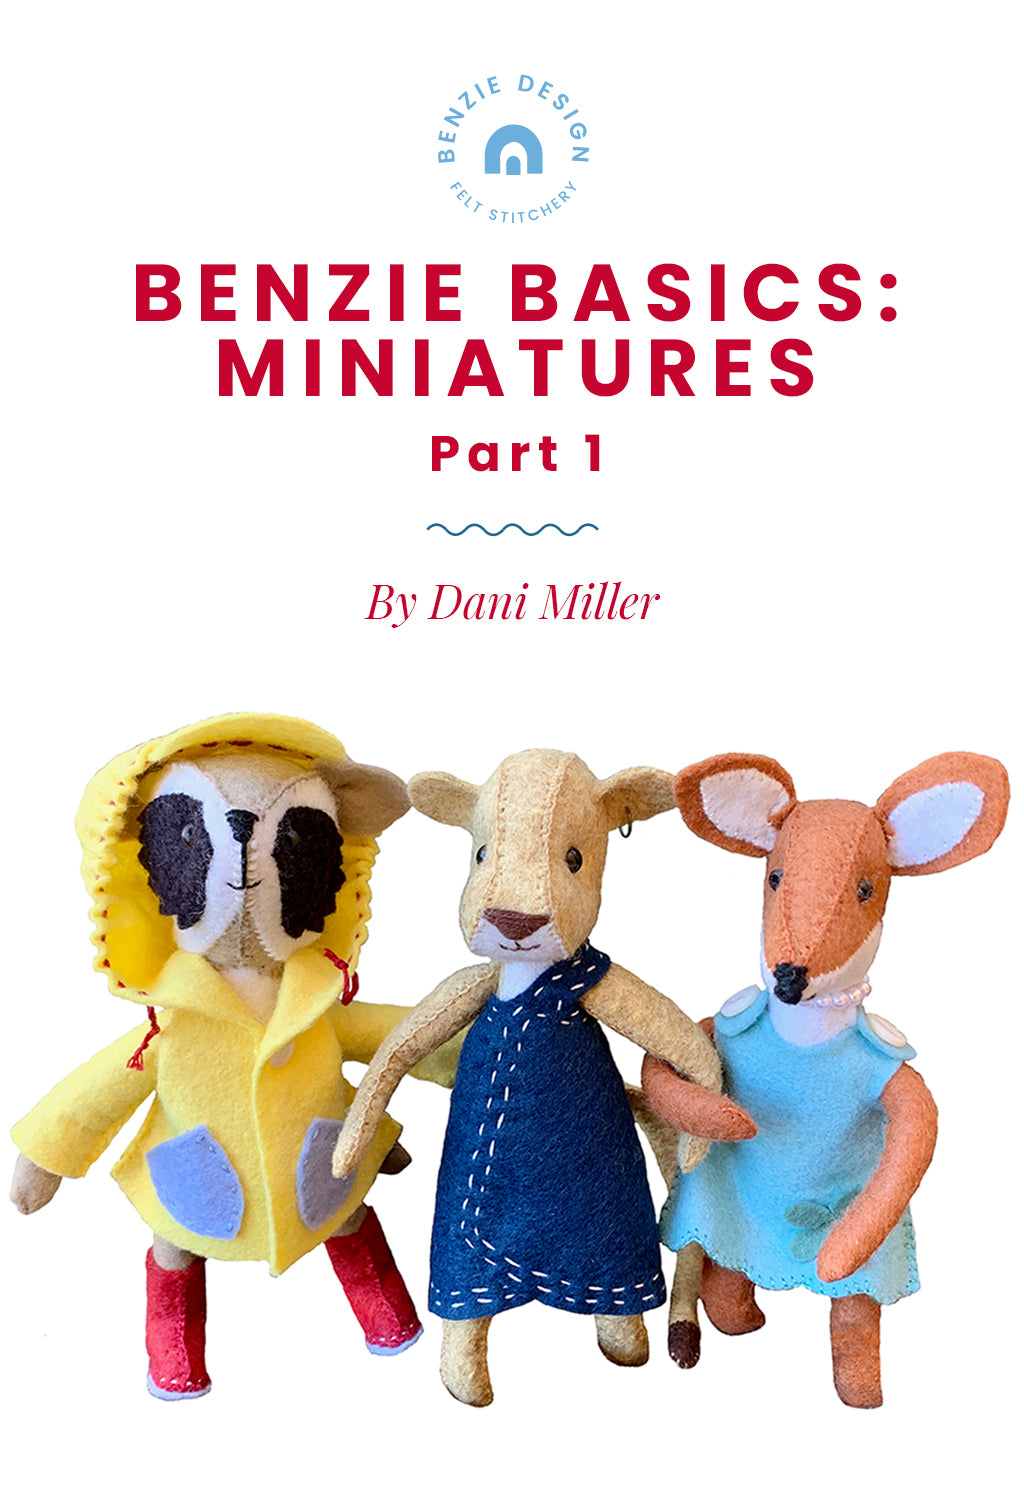 Benzie Basics: Miniatures Series Part One